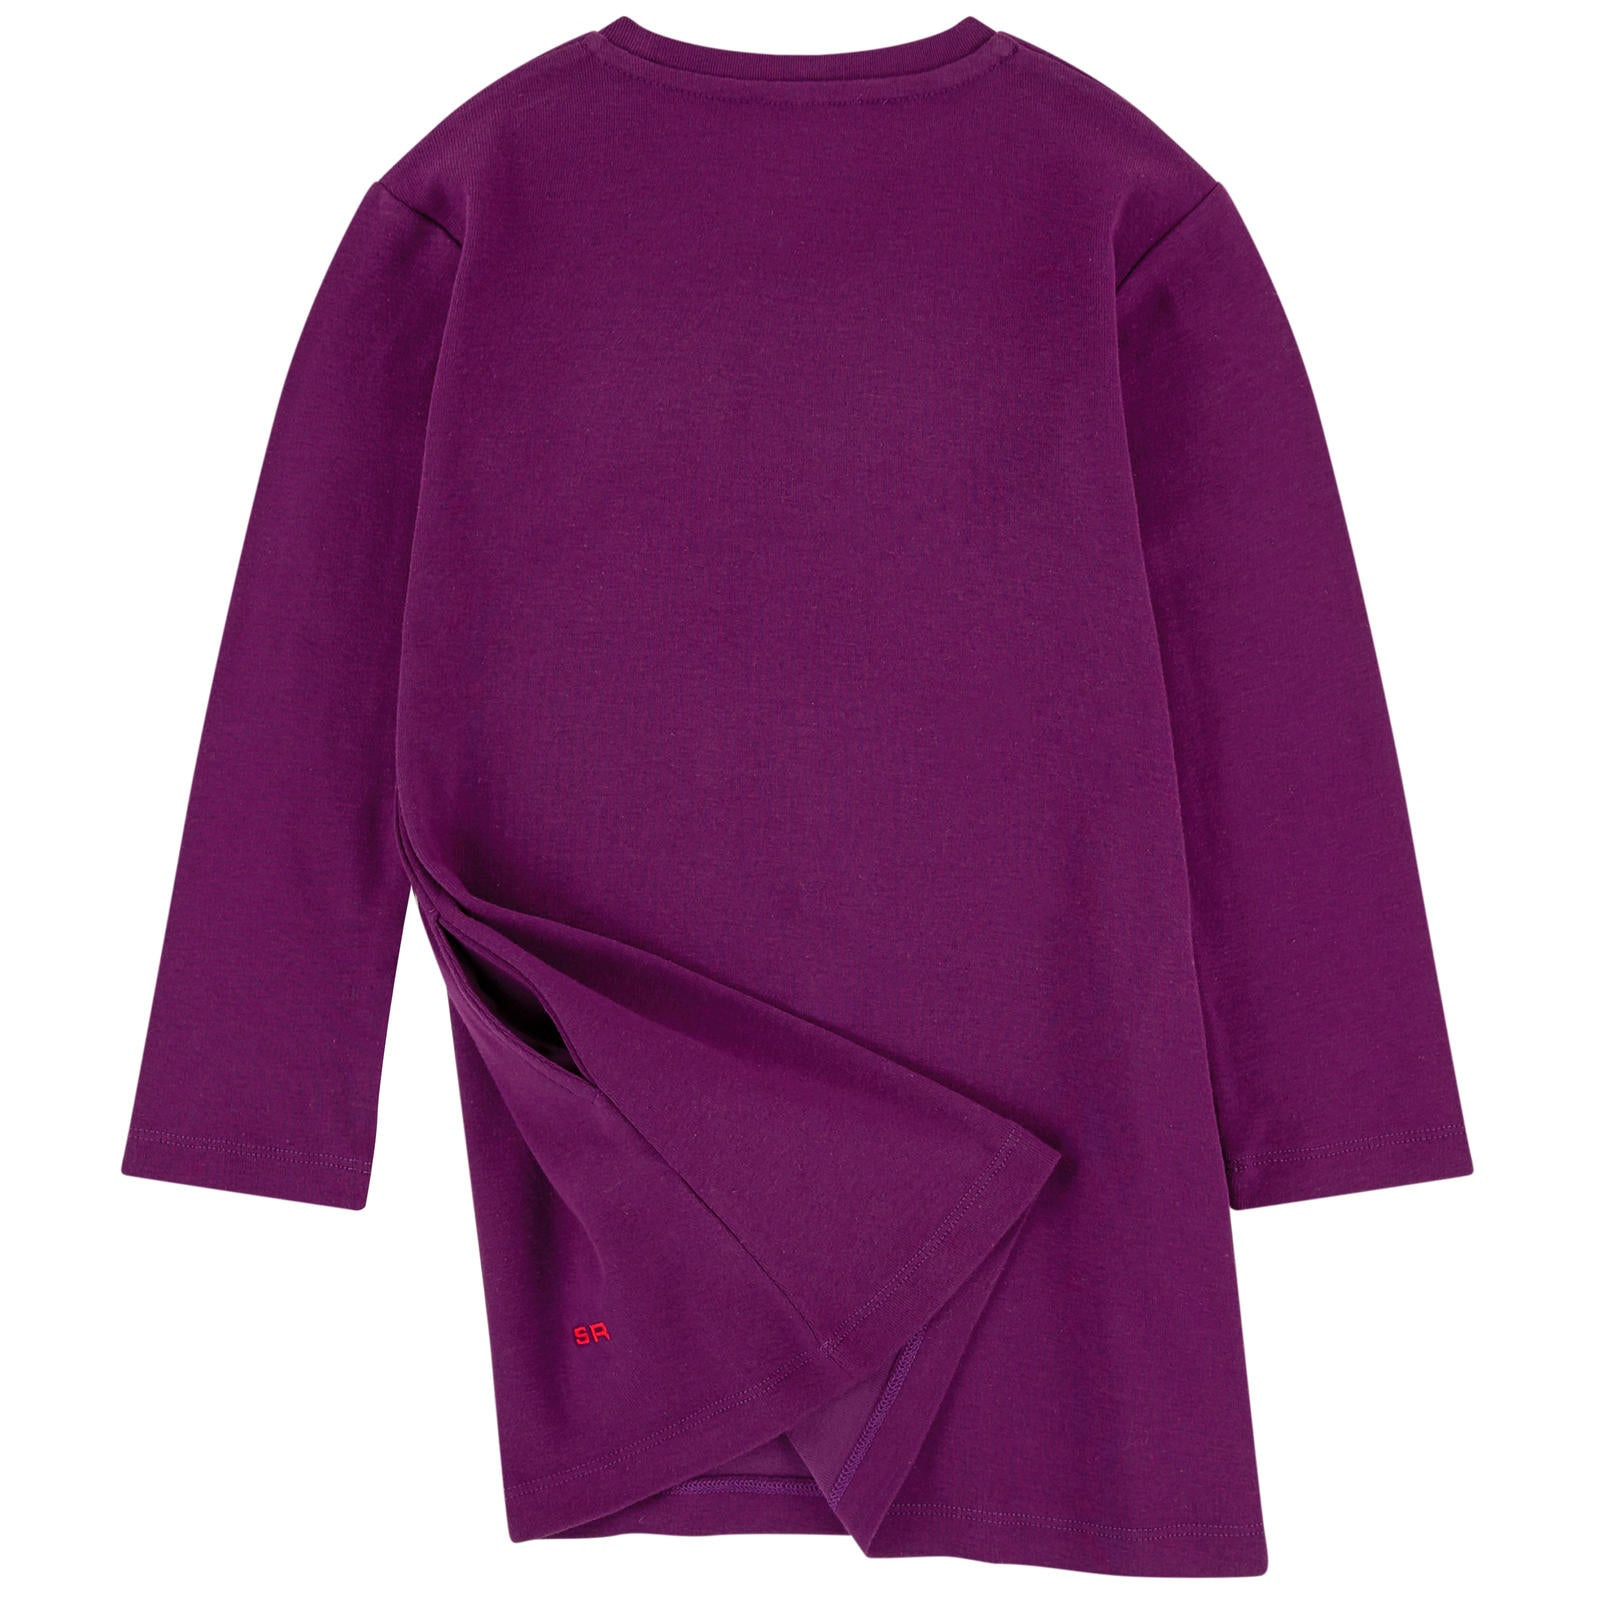 Sonia Rykiel Plum Rykiel Girl Dress - Ladida